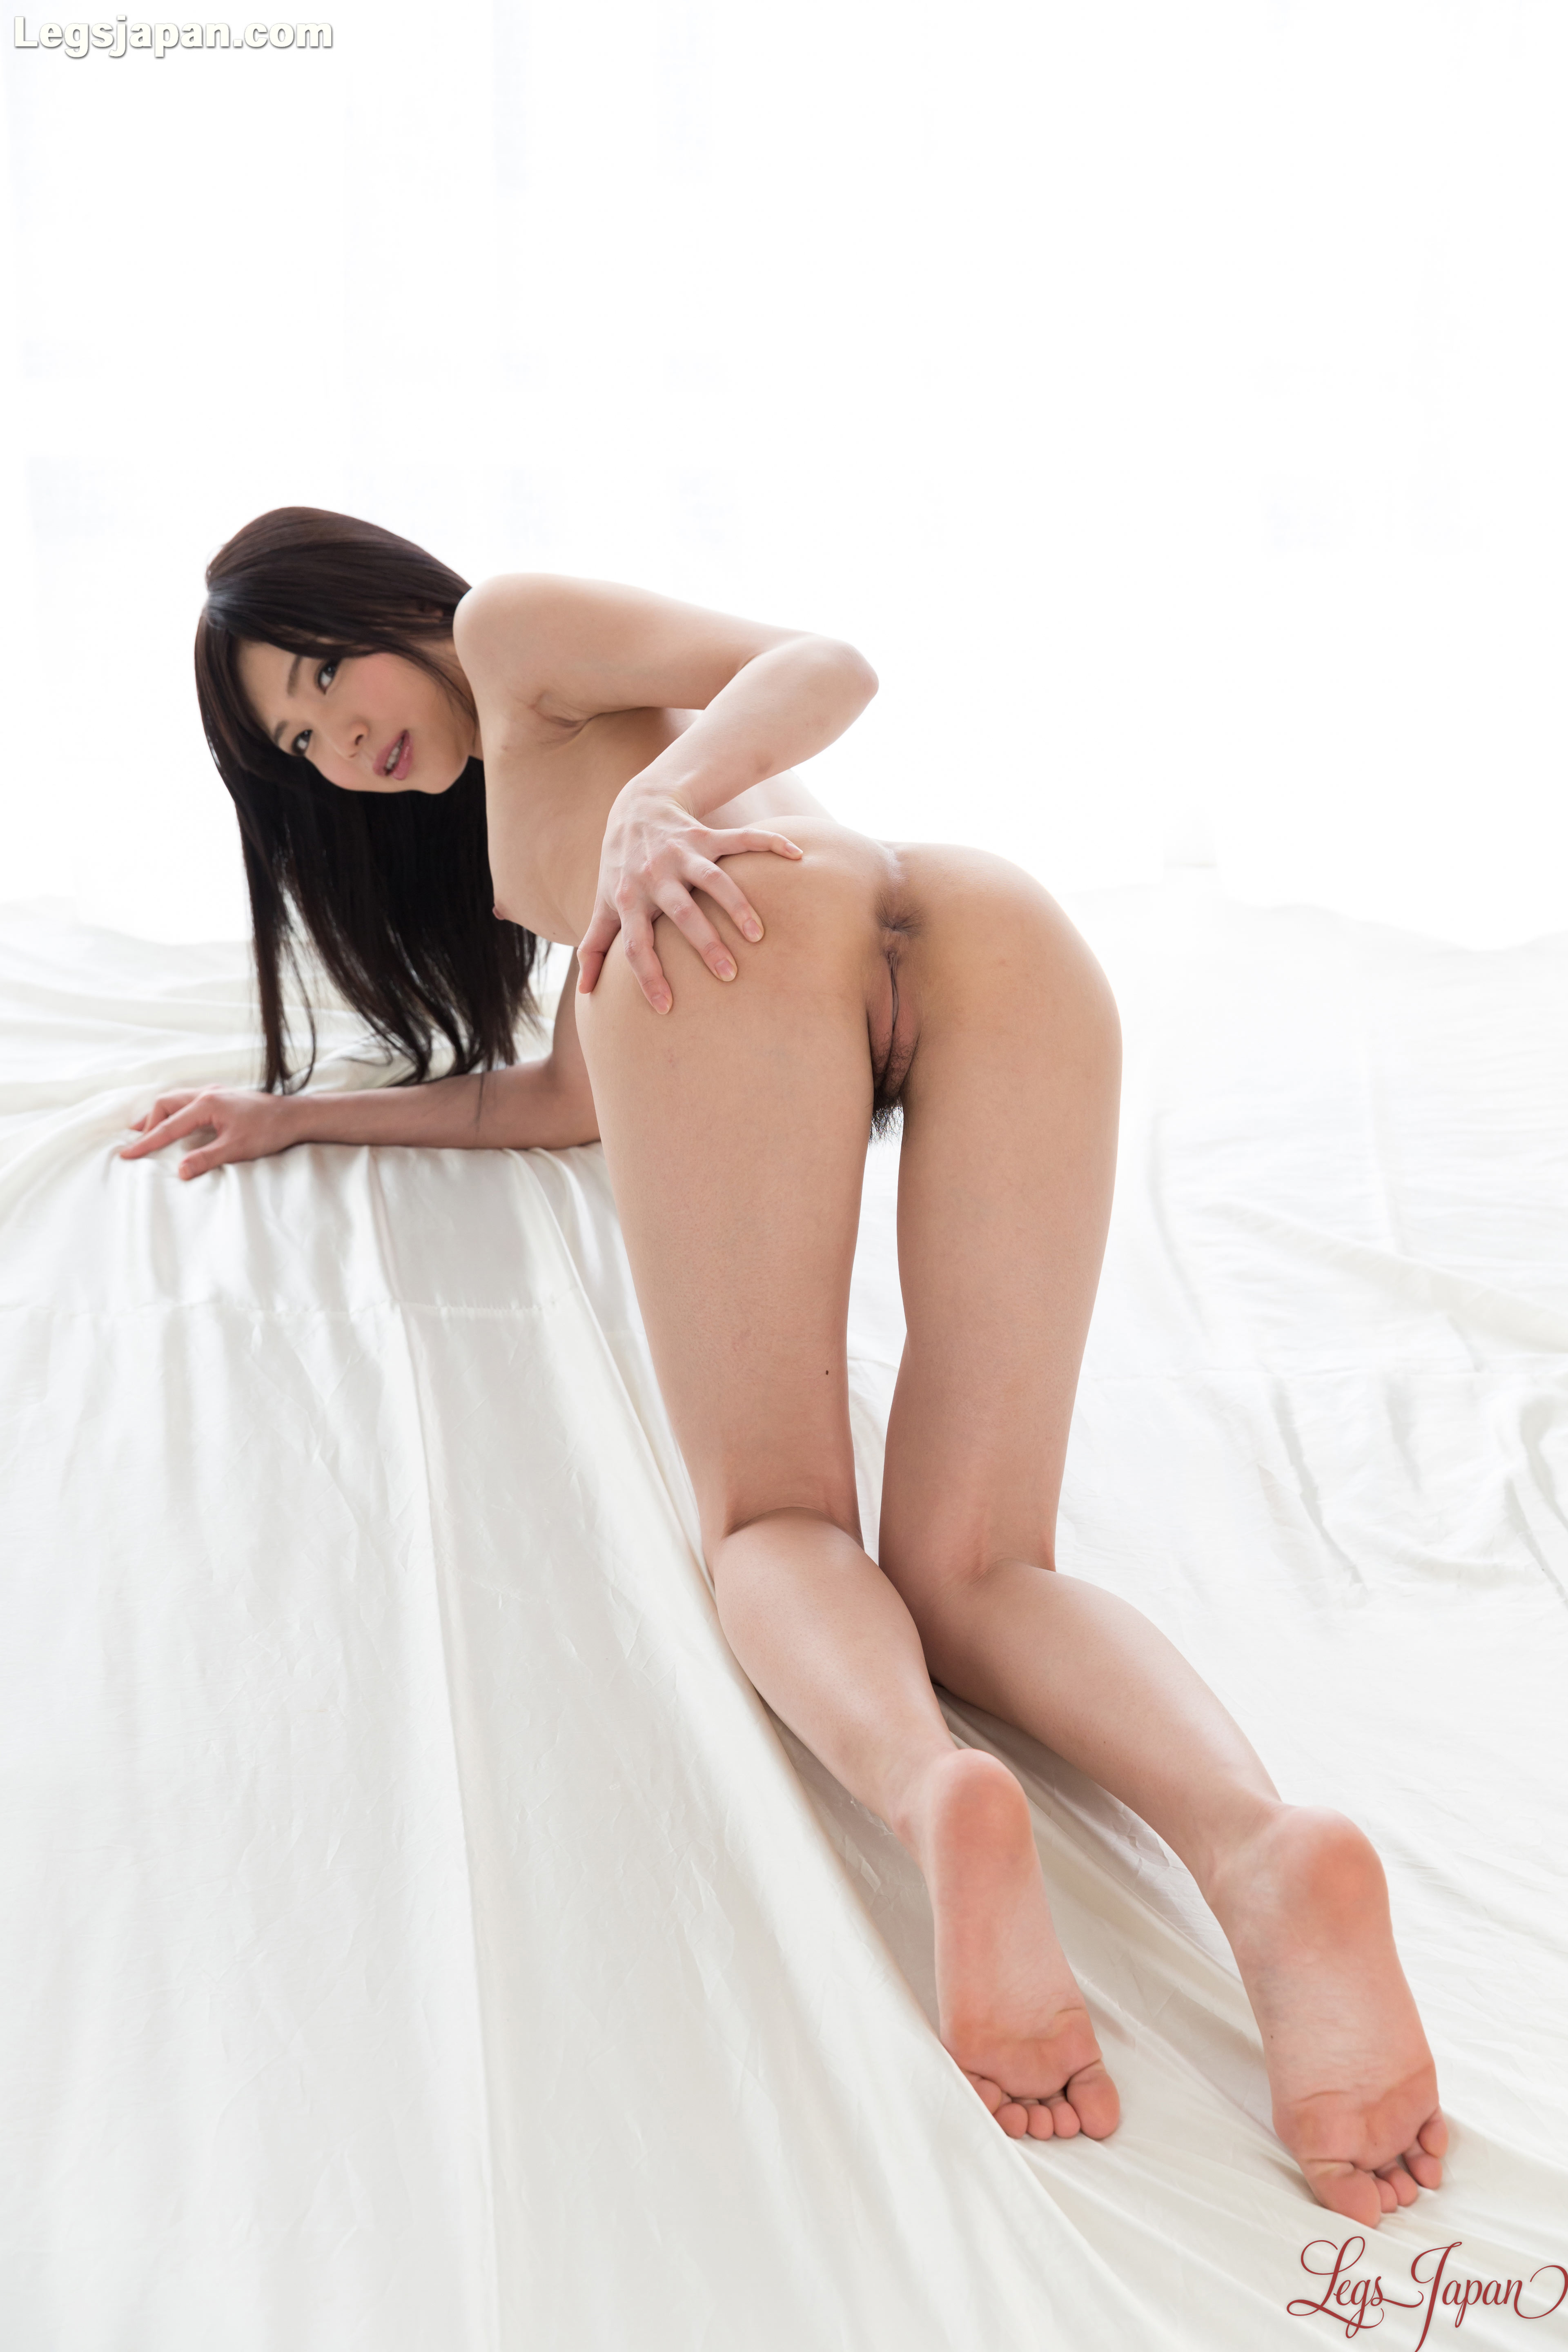 watch dating shows online